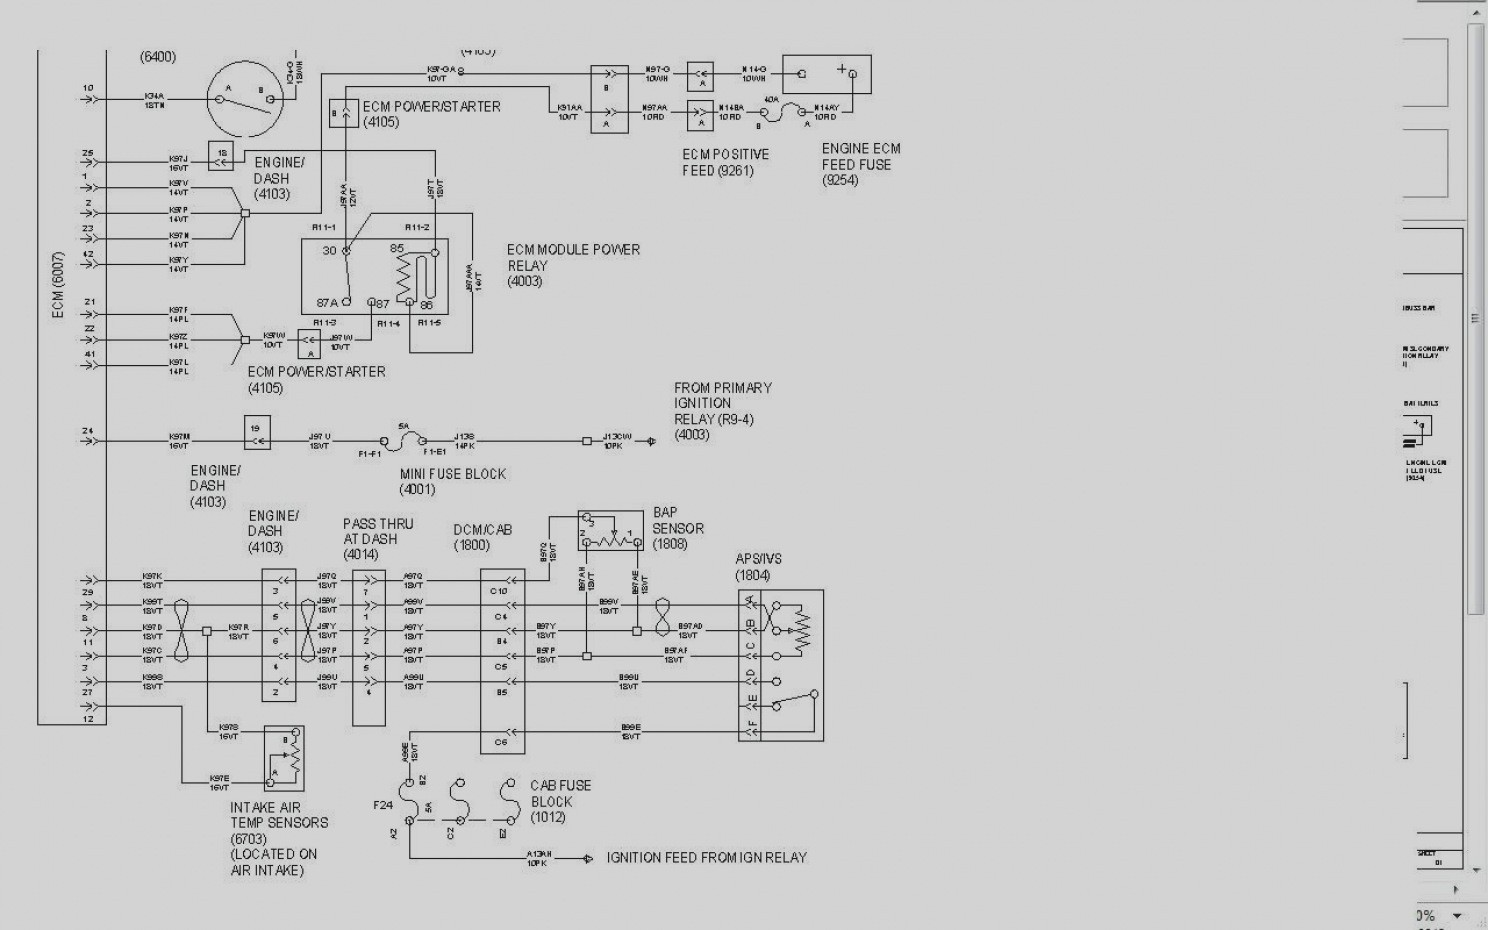 International 4300 Wiring Diagram - Wiring Diagram G11 on radio shack rotator schematic, decibel meter radio shack schematic, 2 tube radio schematic, mfj antenna tuner schematic, mfj keyer schematic,